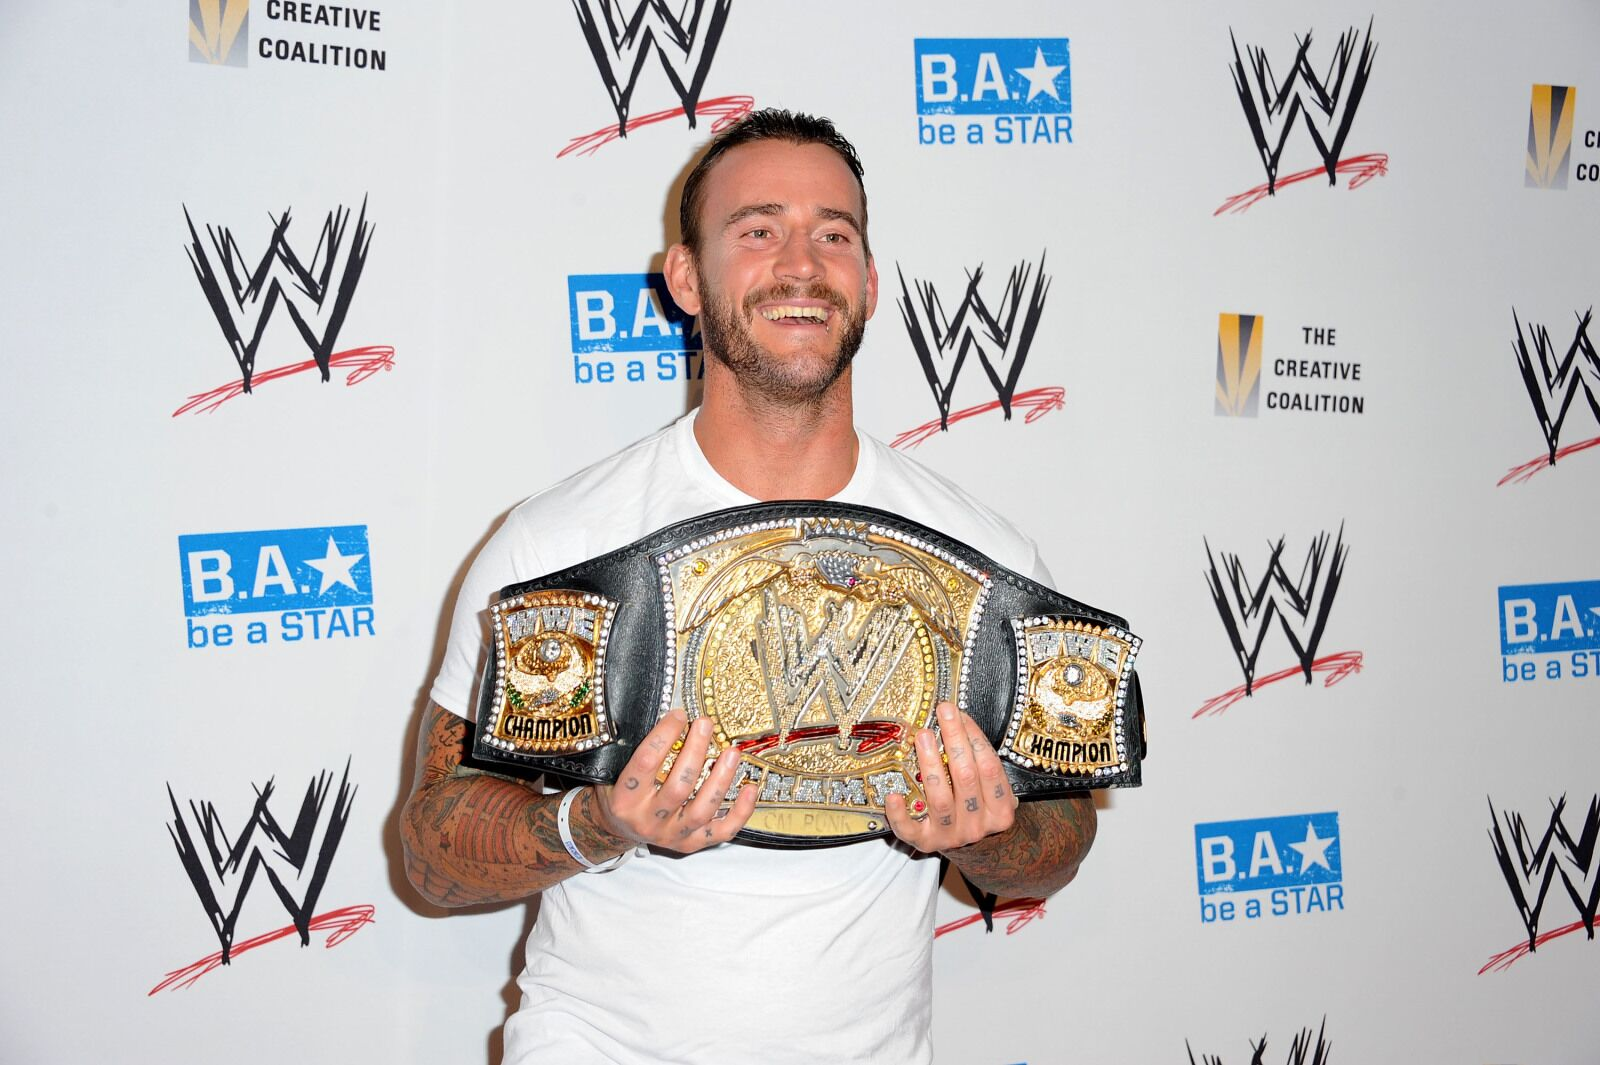 WWE Rumors: Don't get excited, CM Punk is trolling you